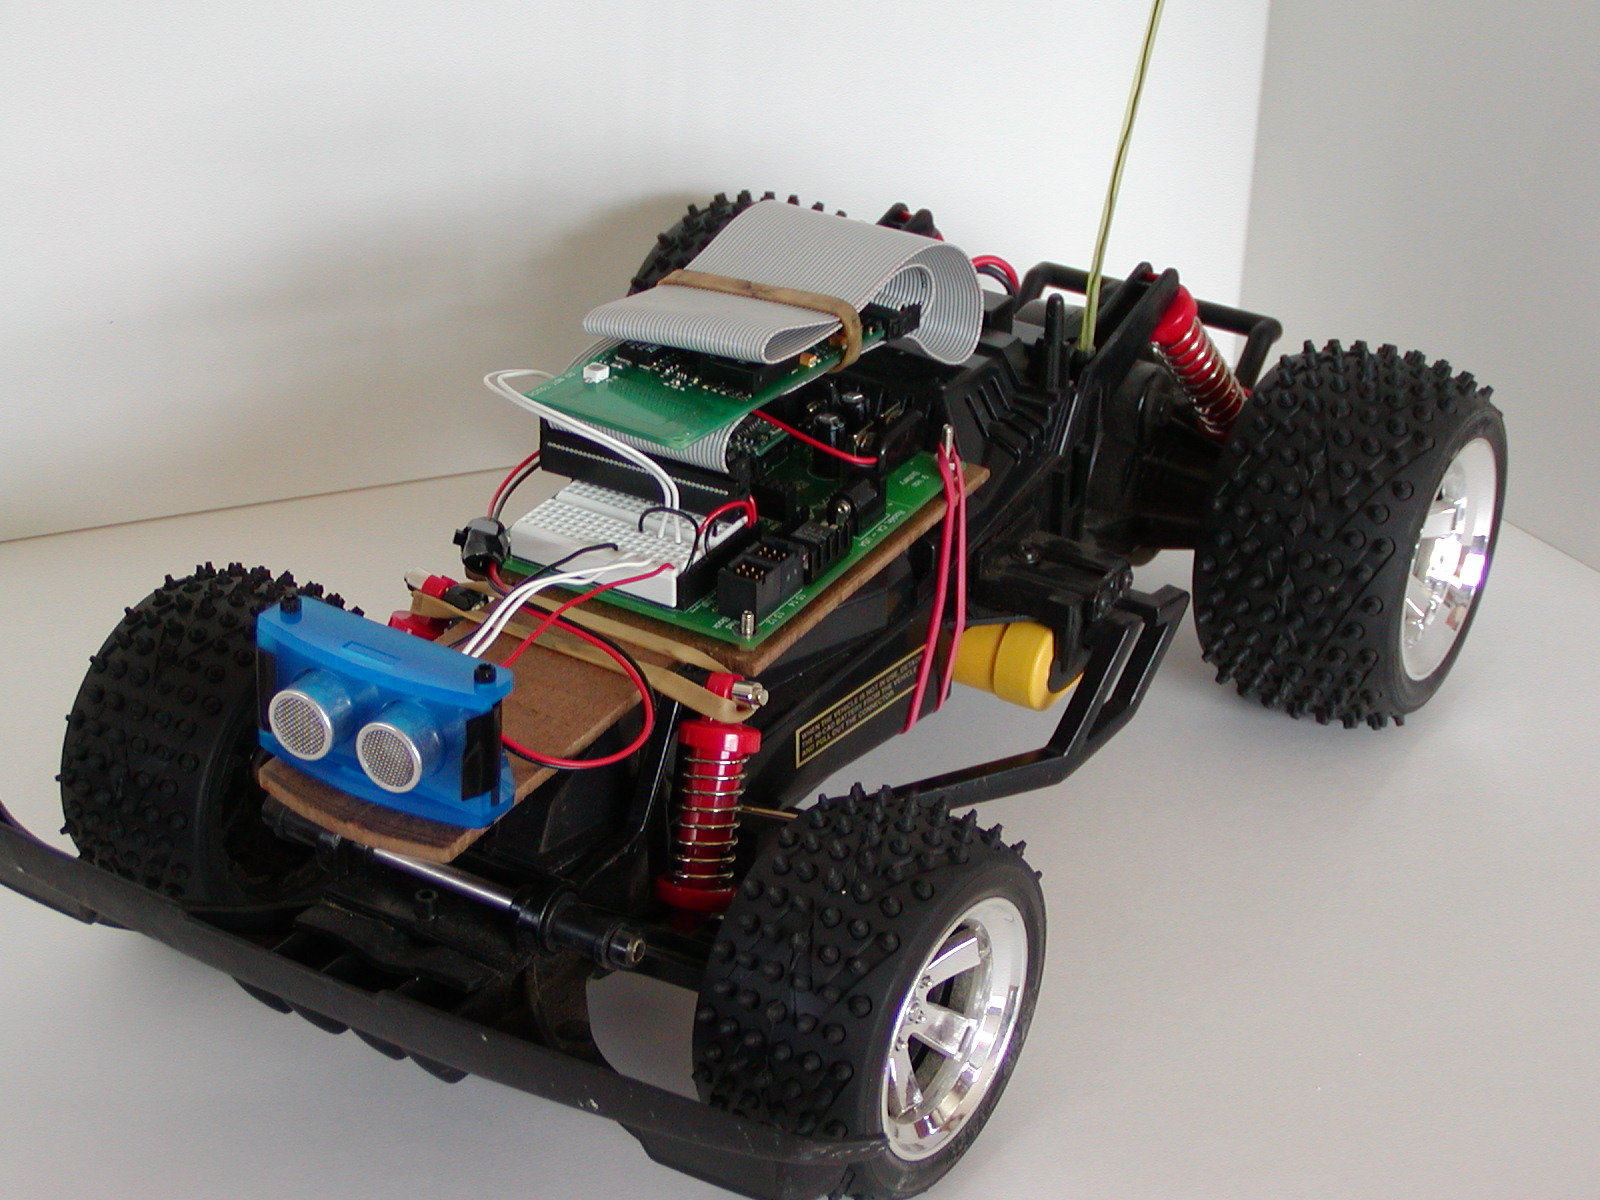 Computer controlled R/C Car Project